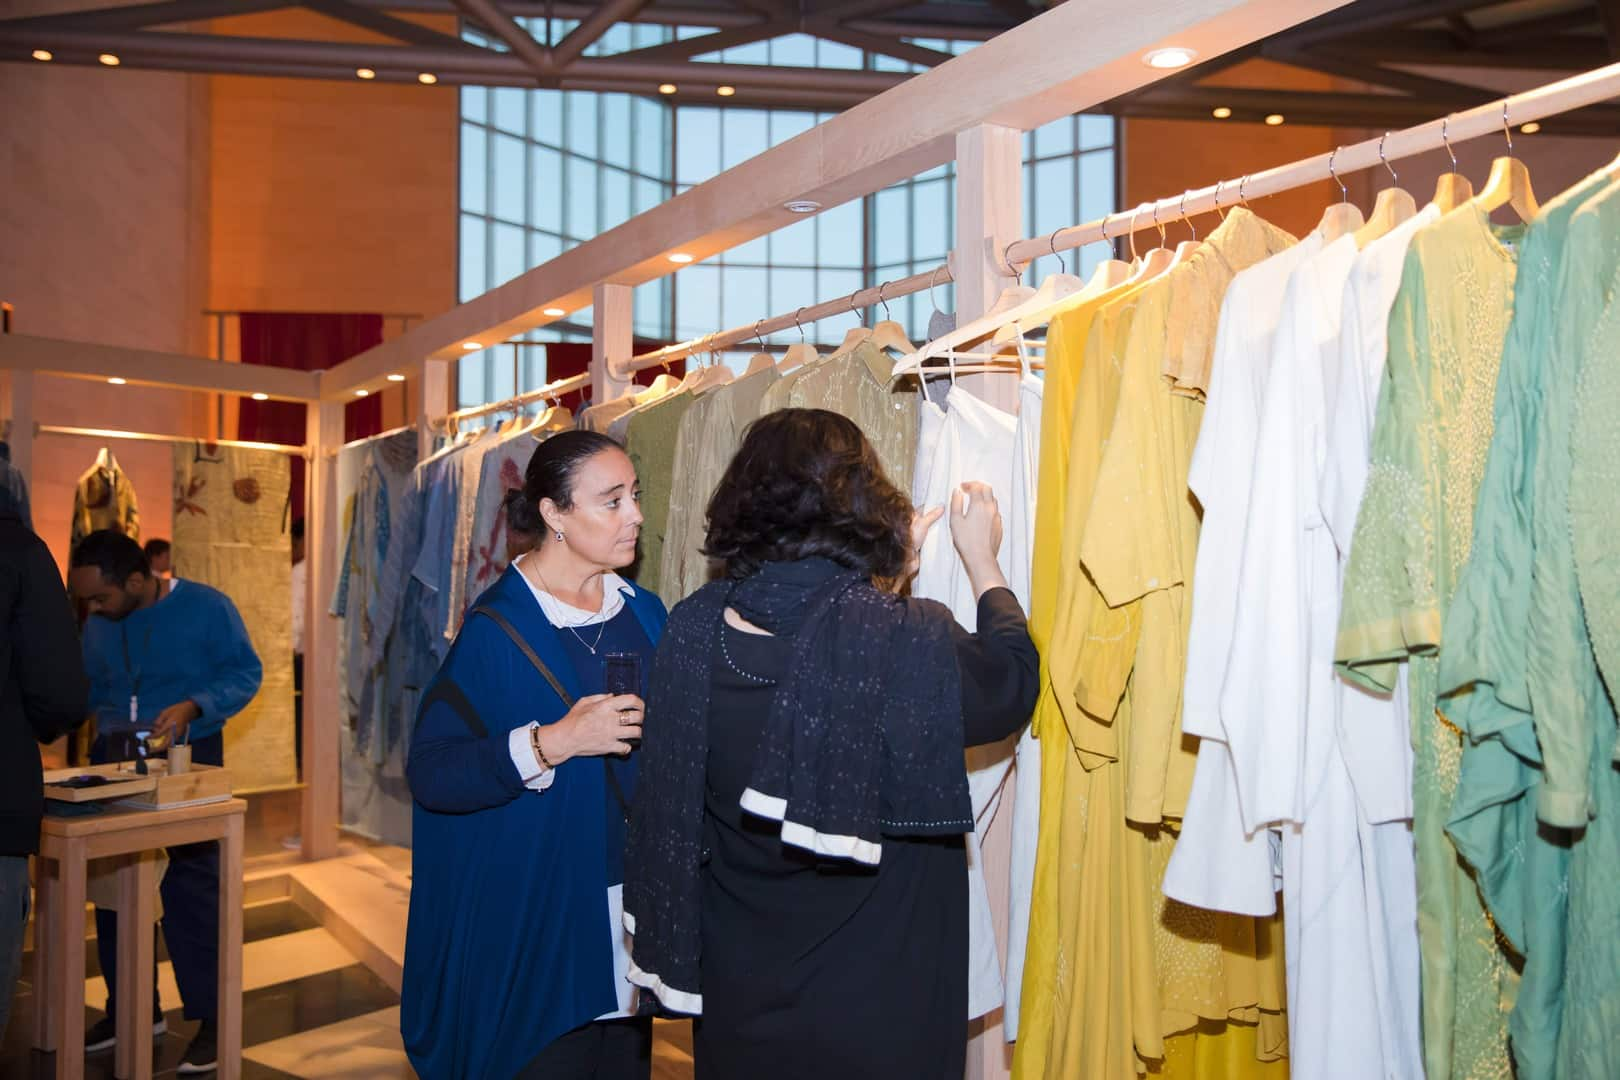 /img/events/yoc/media/market-for-ethical-textile-and-fashion-brands-6.jpg